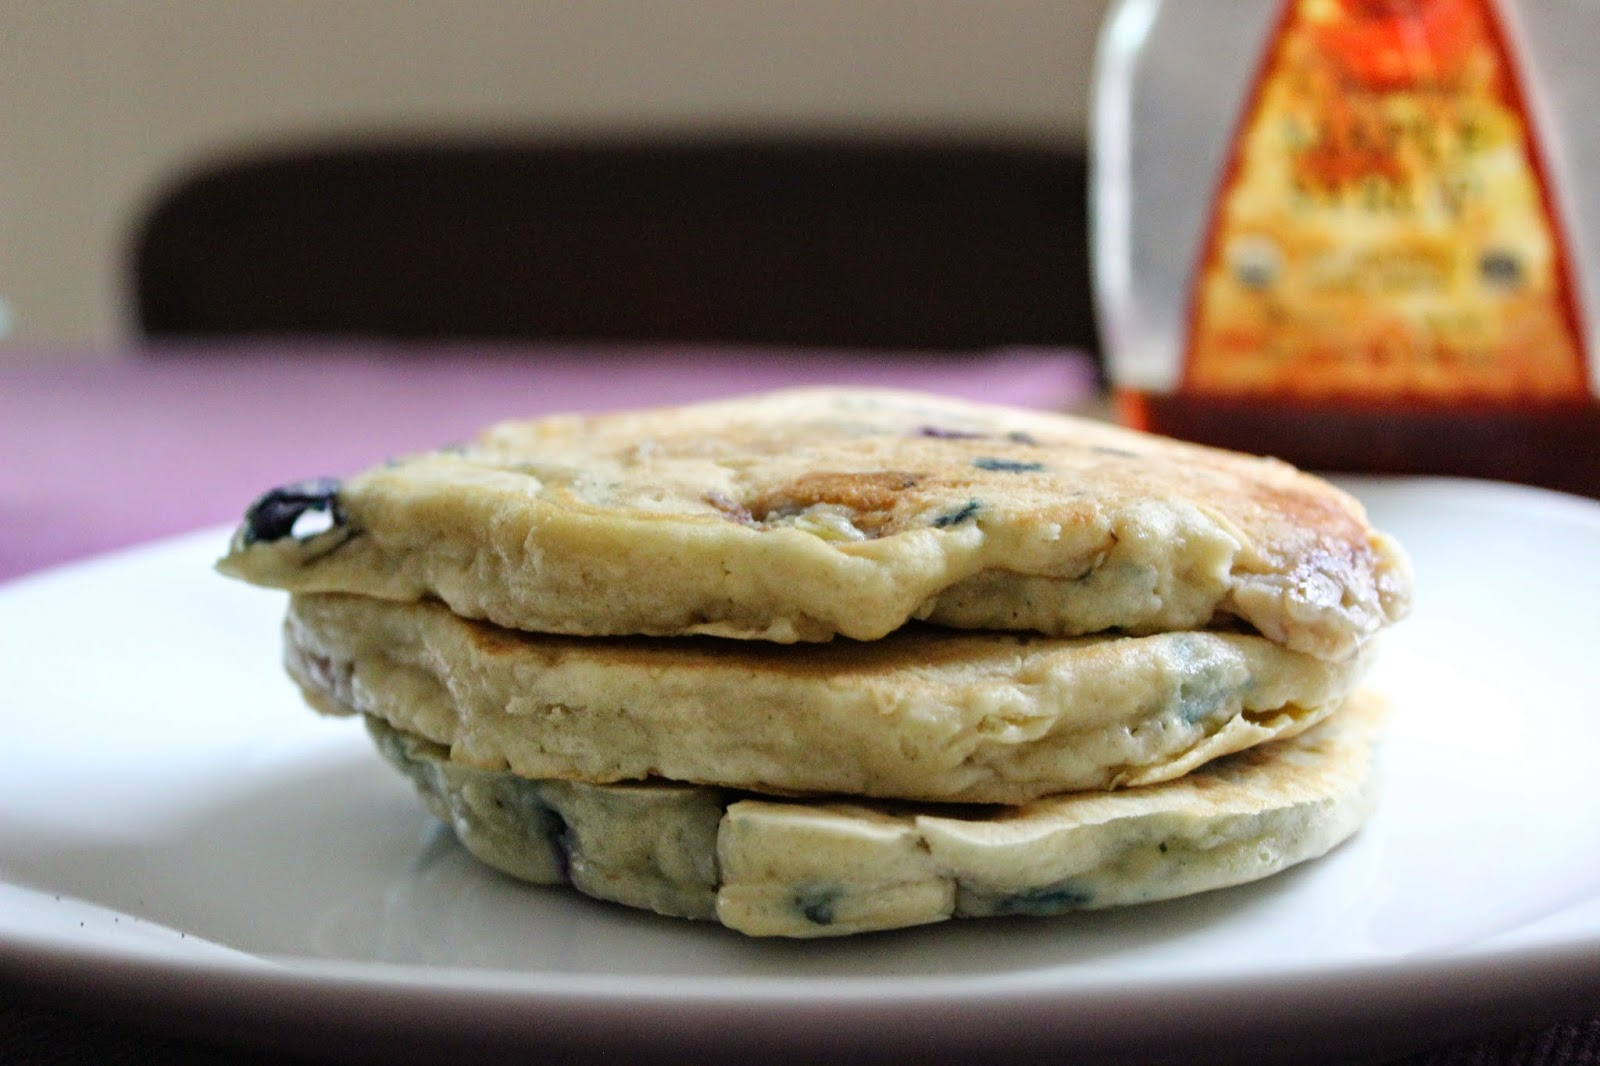 Blueberry-Banana Beer Pancakes | The Economical Eater